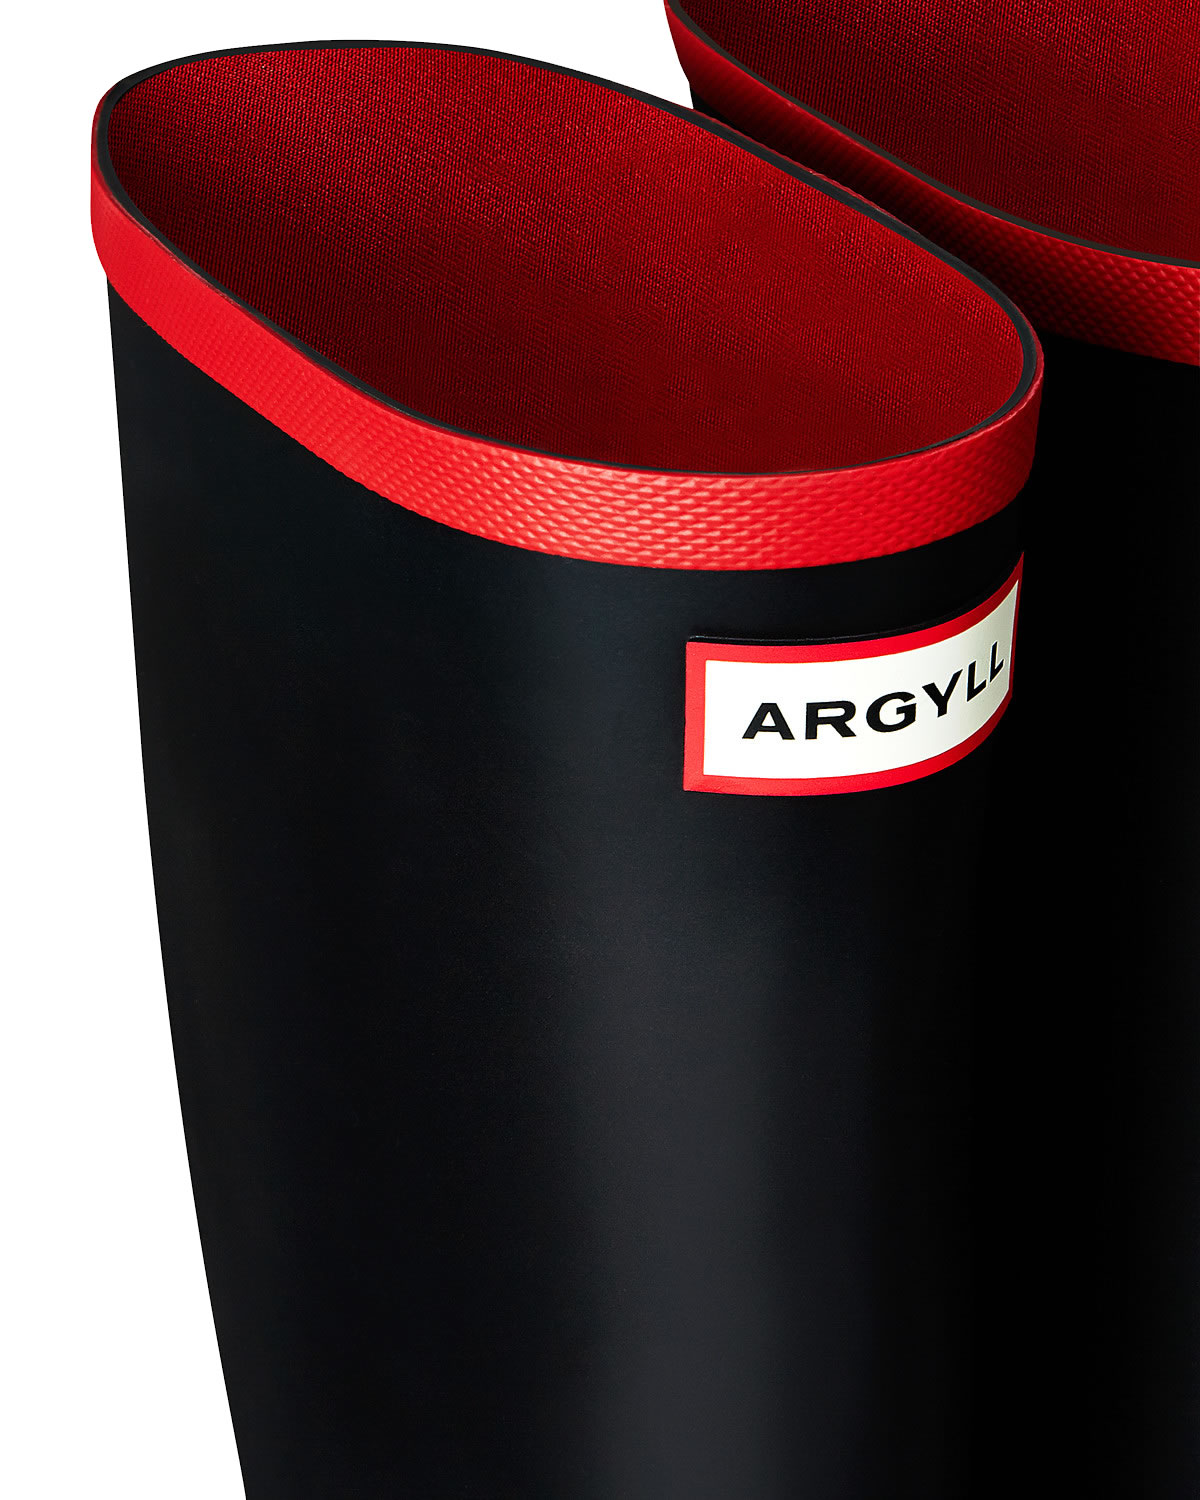 Extra image of Hunter Argyll Neoprene Wellington Boots